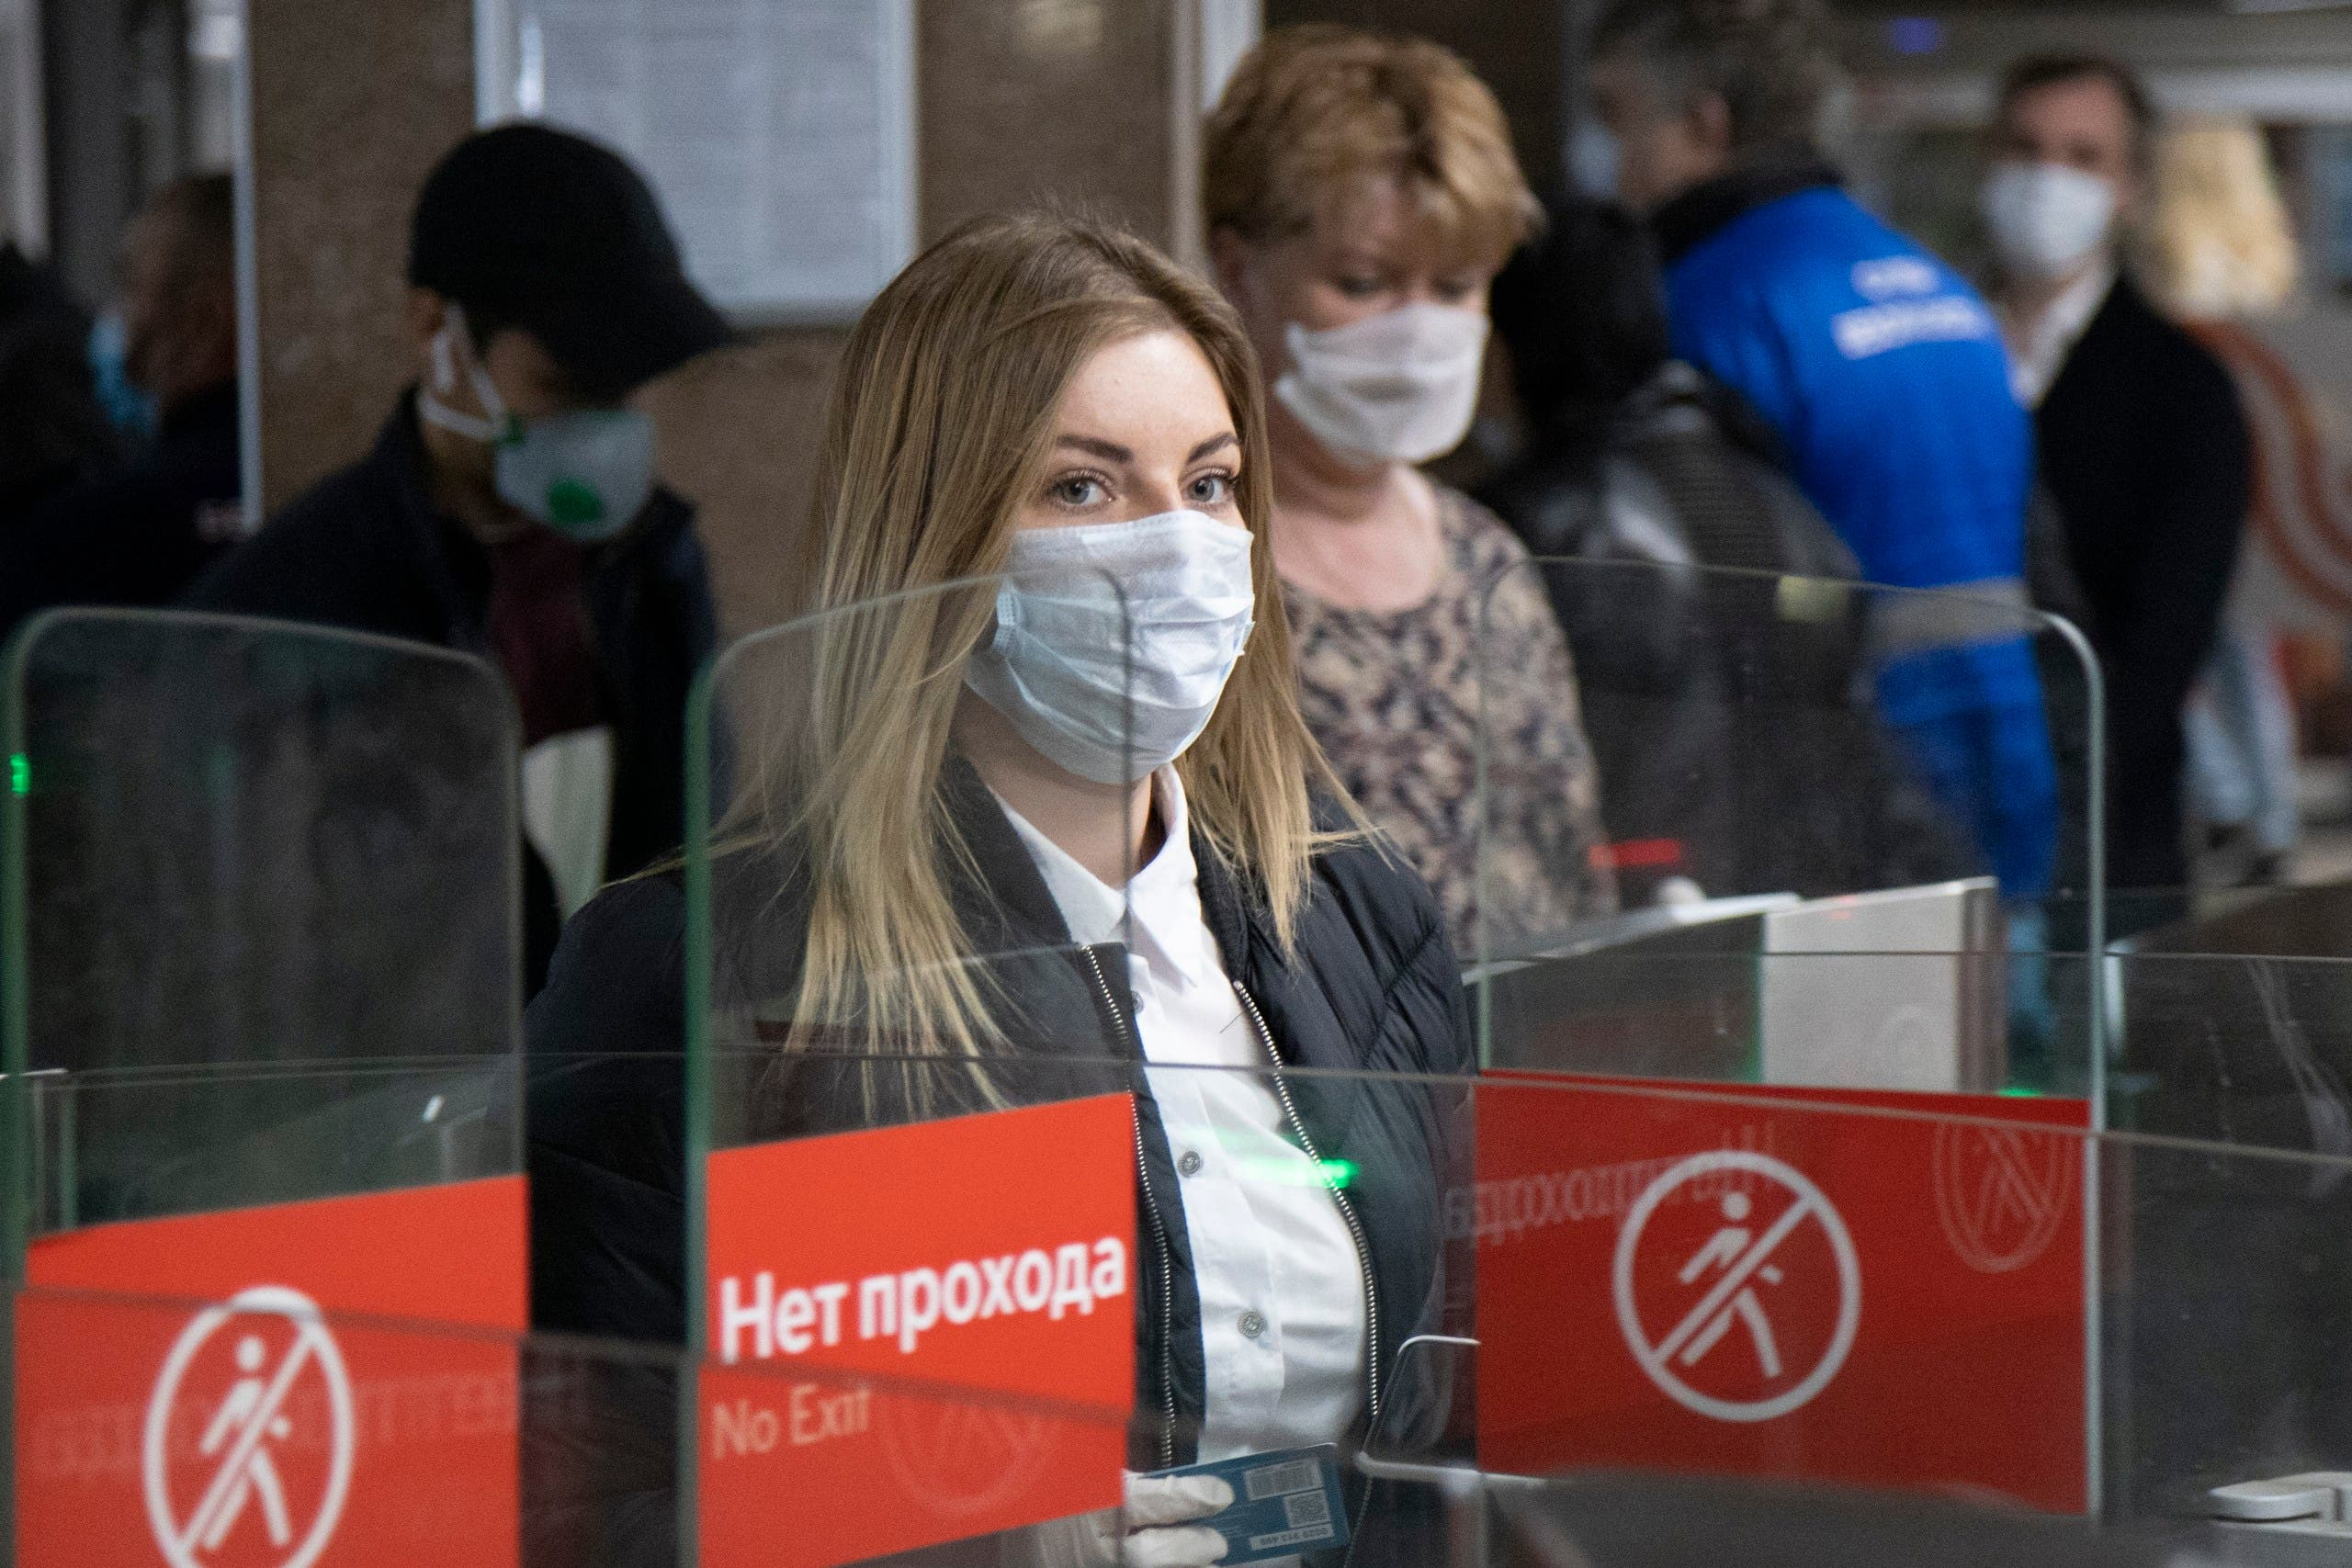 People wearing face masks and gloves to protect against coronavirus, observe social distancing guidelines as they pass through the turnstiles of the subway in Moscow, Russia on May 12, 2020. (AP)